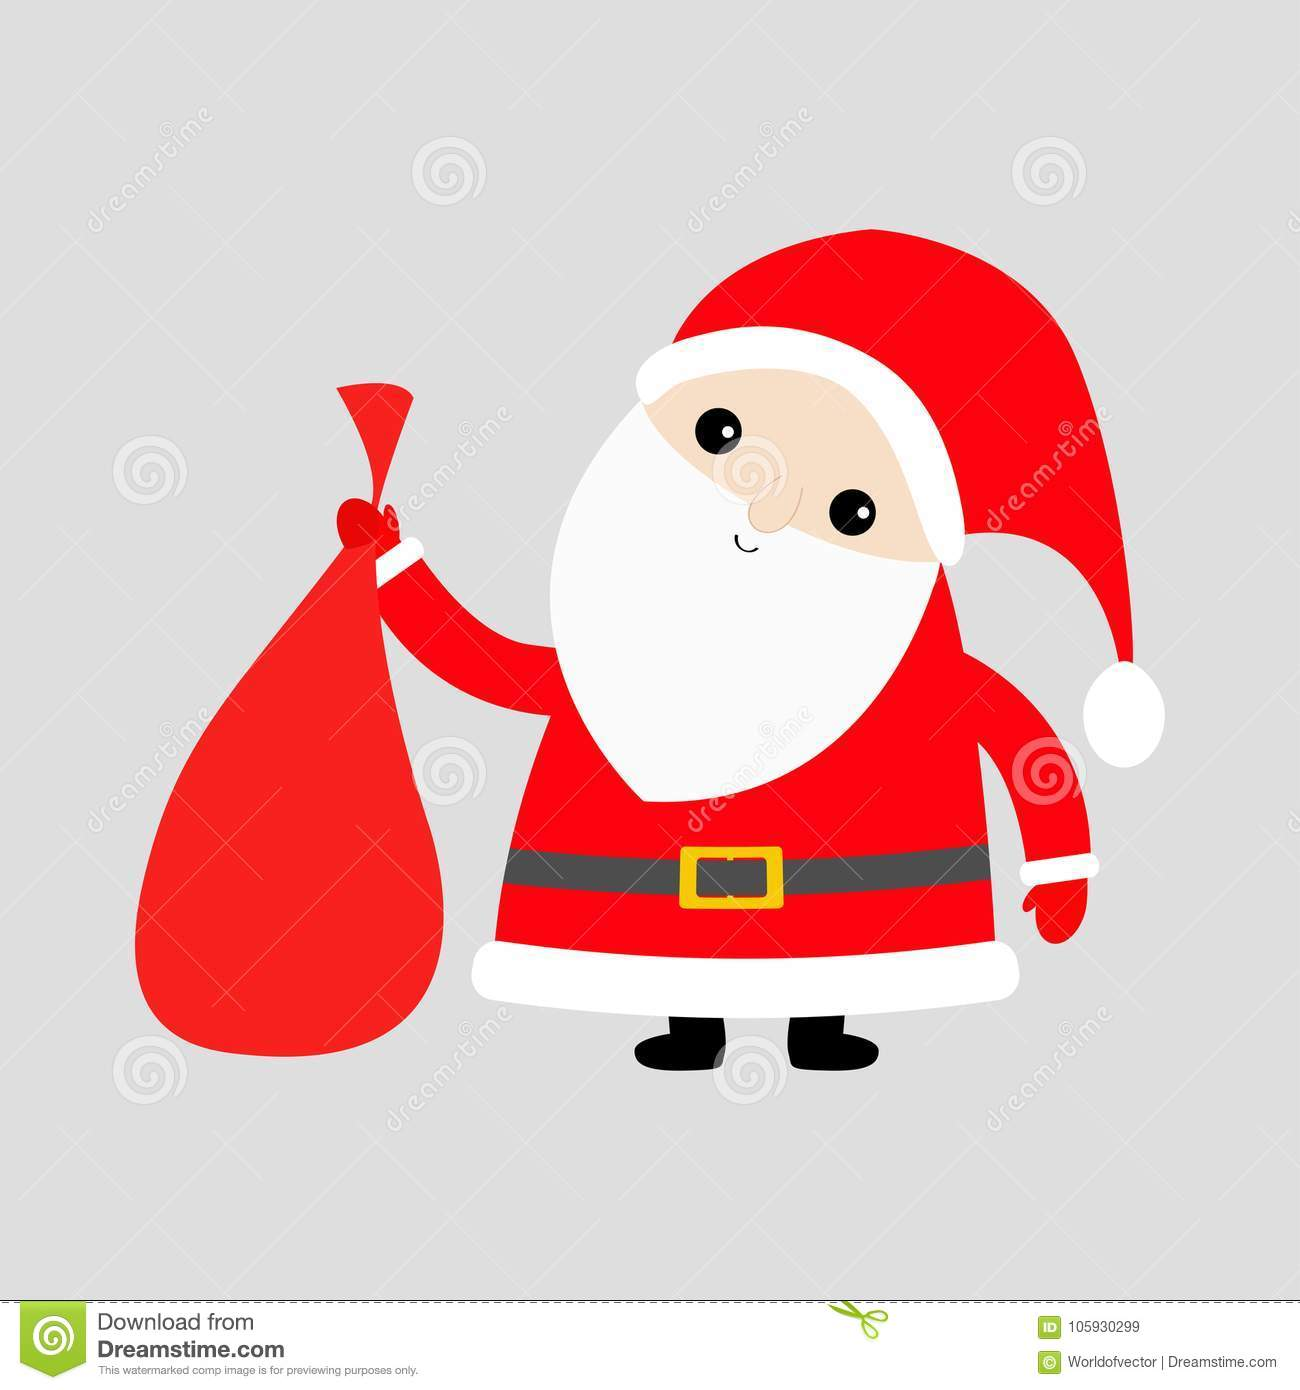 7b77c630e40c9 Royalty-Free Vector. Santa Claus holding carrying sack gift bag. Red hat